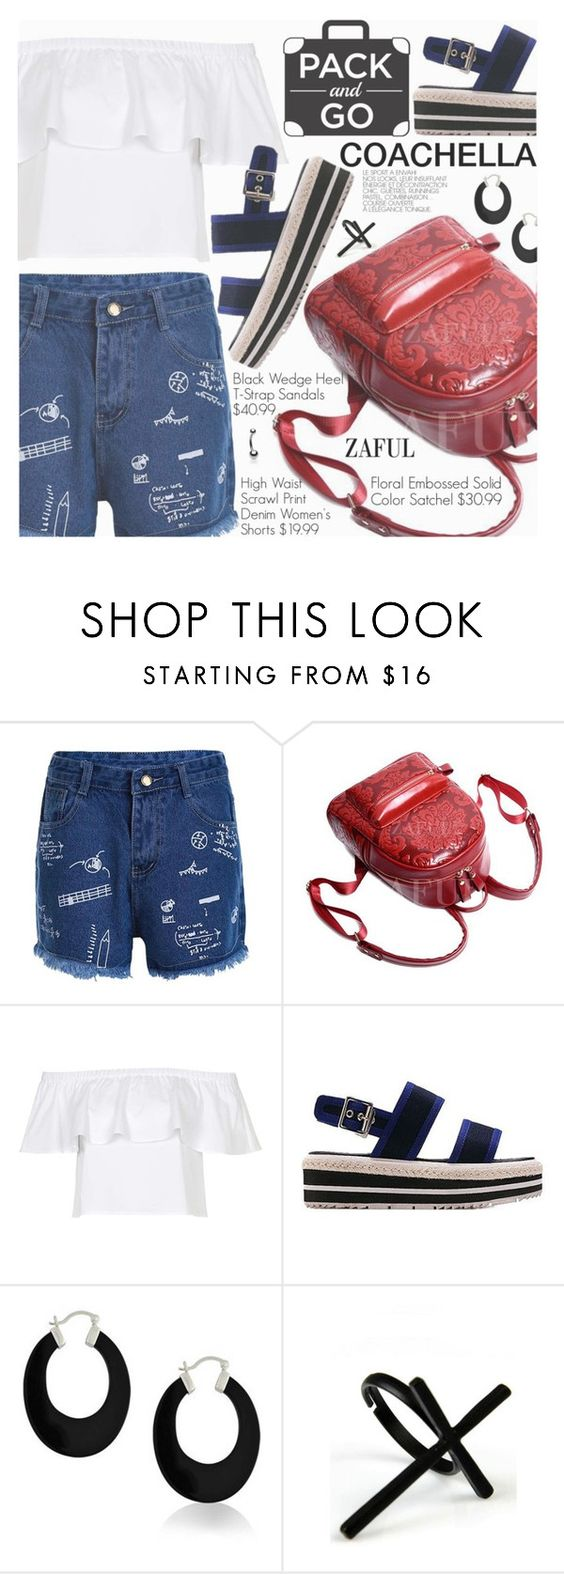 """""""Pack for Coachella!"""" by pokadoll ❤ liked on Polyvore featuring Topshop, Bling Jewelry and Emi Jewellery"""